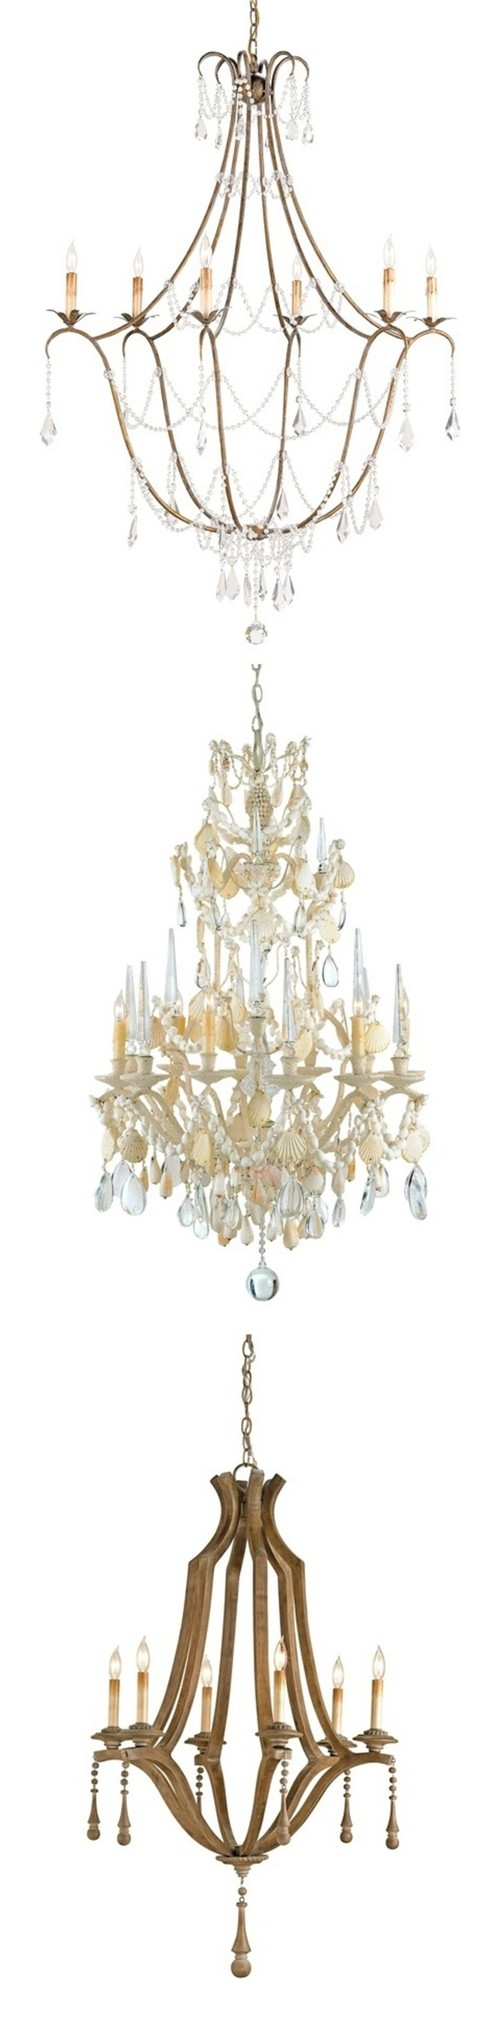 Chandelier size ideas for dining room w high ceilings for Size of chandelier for dining room